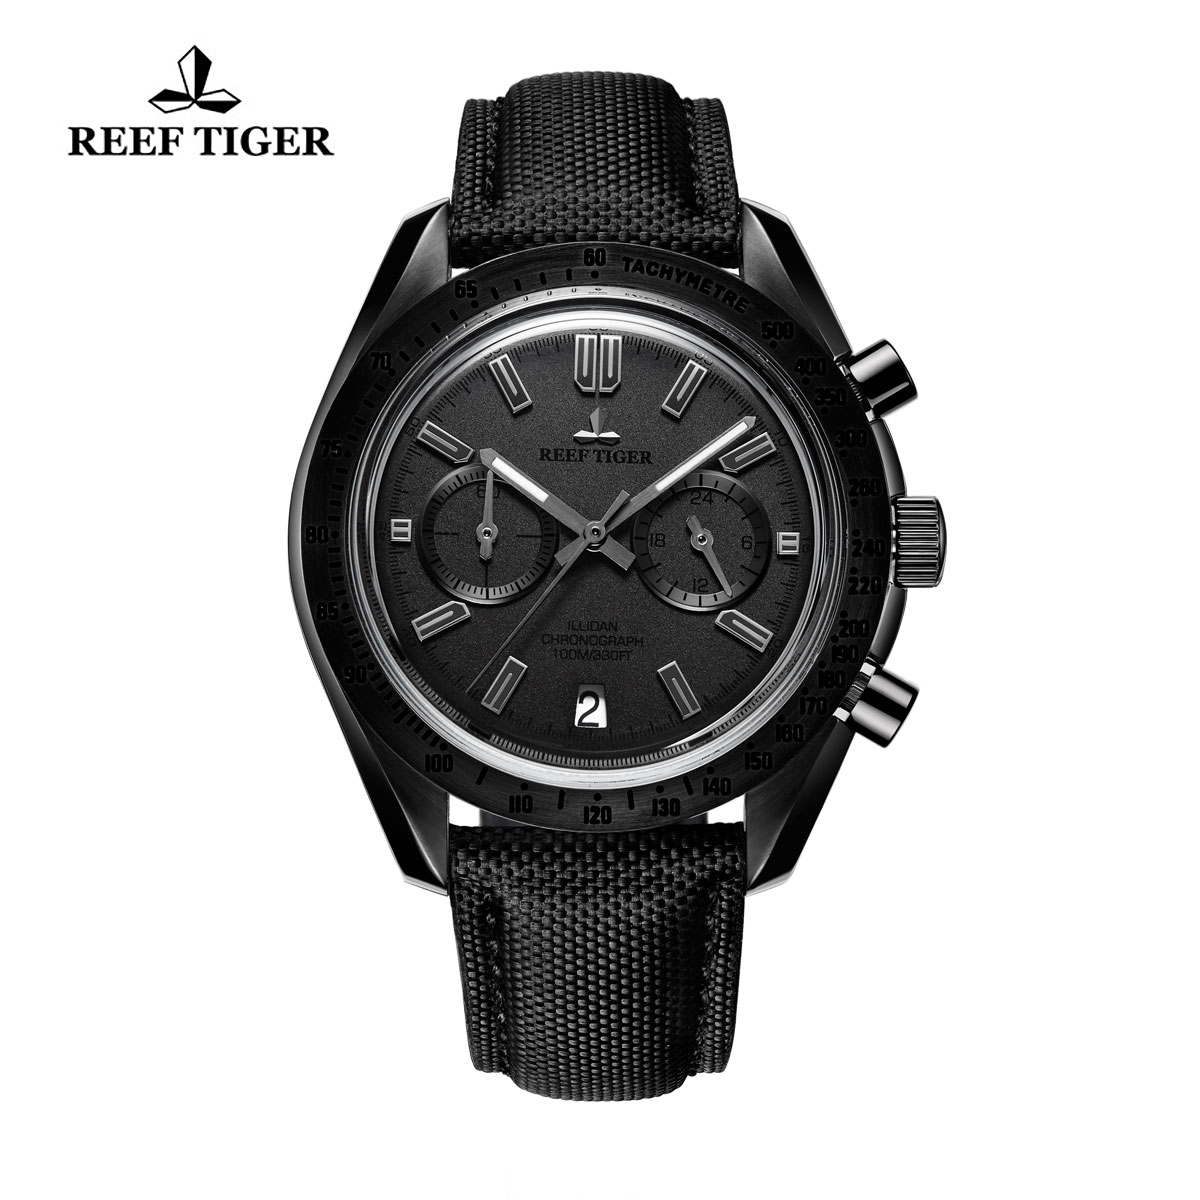 Reef Tiger Illidan Quartz Watches Chronograph PVD Case Black Dial Leather Strap Watches RGA3033-BHB